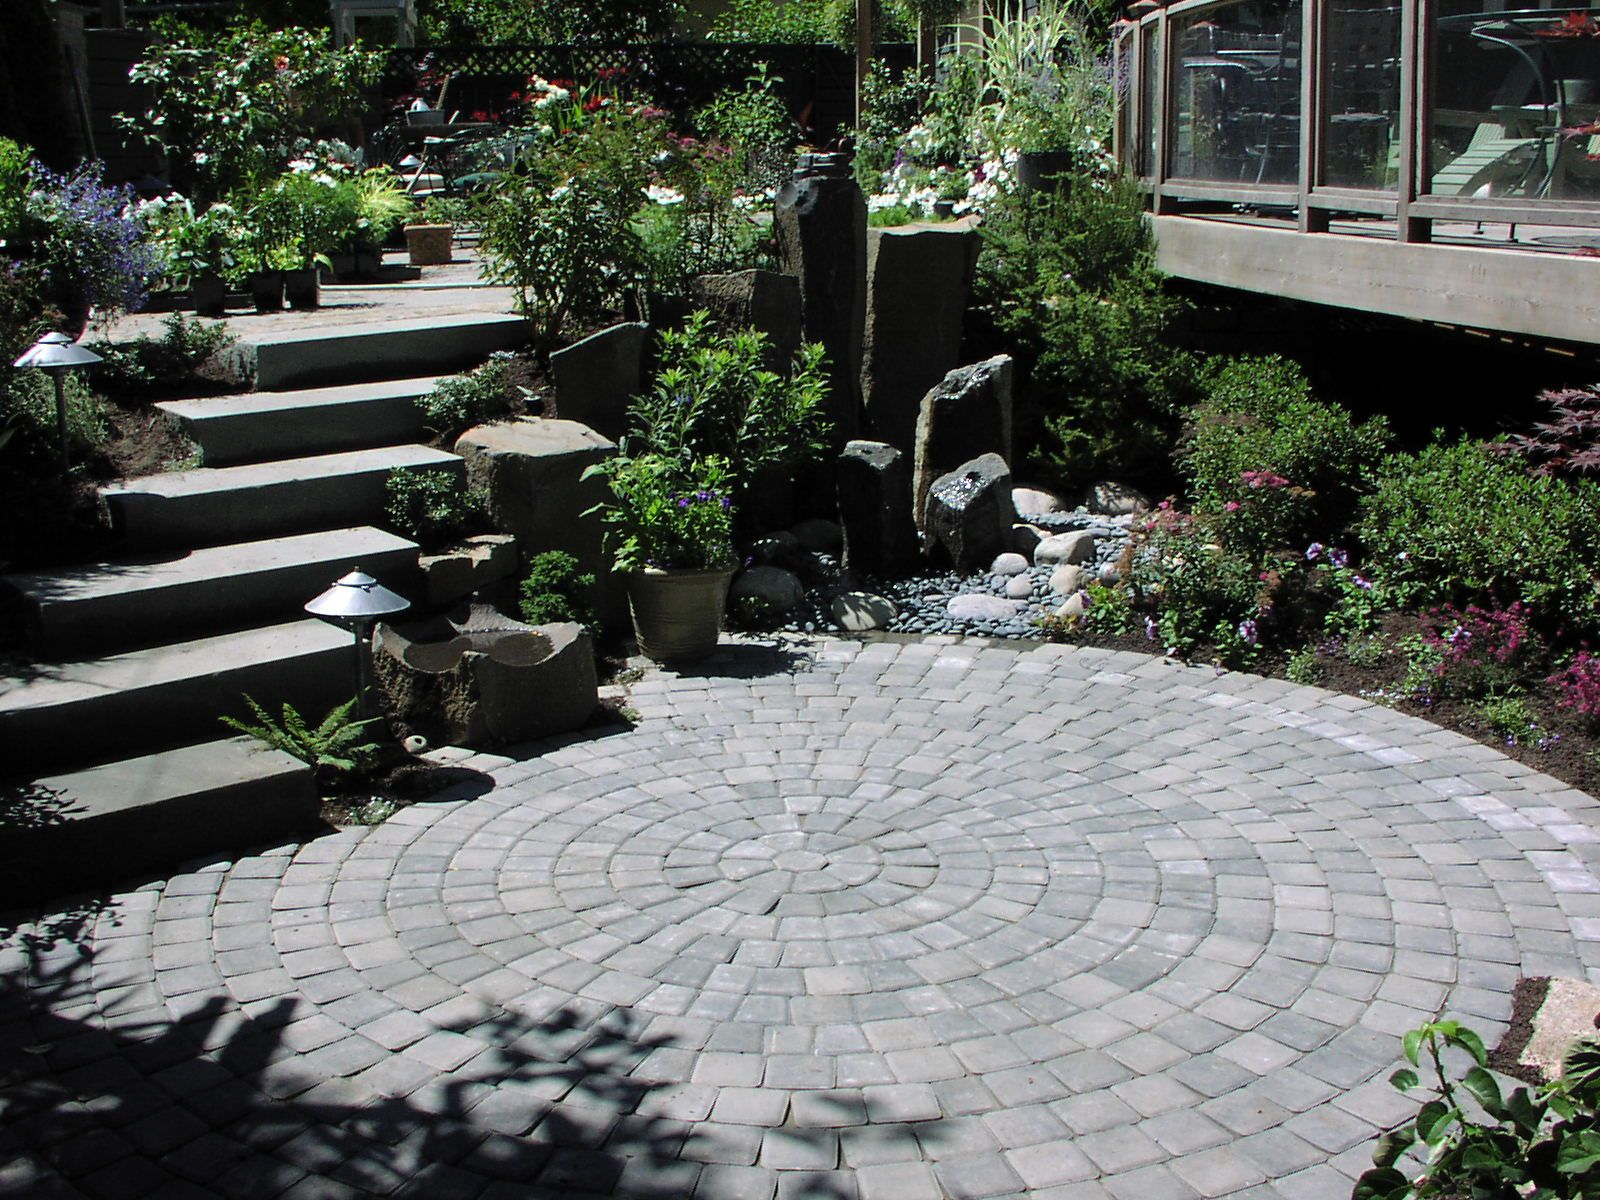 Paver patio designed by Environmental Construction Inc. in Kirkland WA